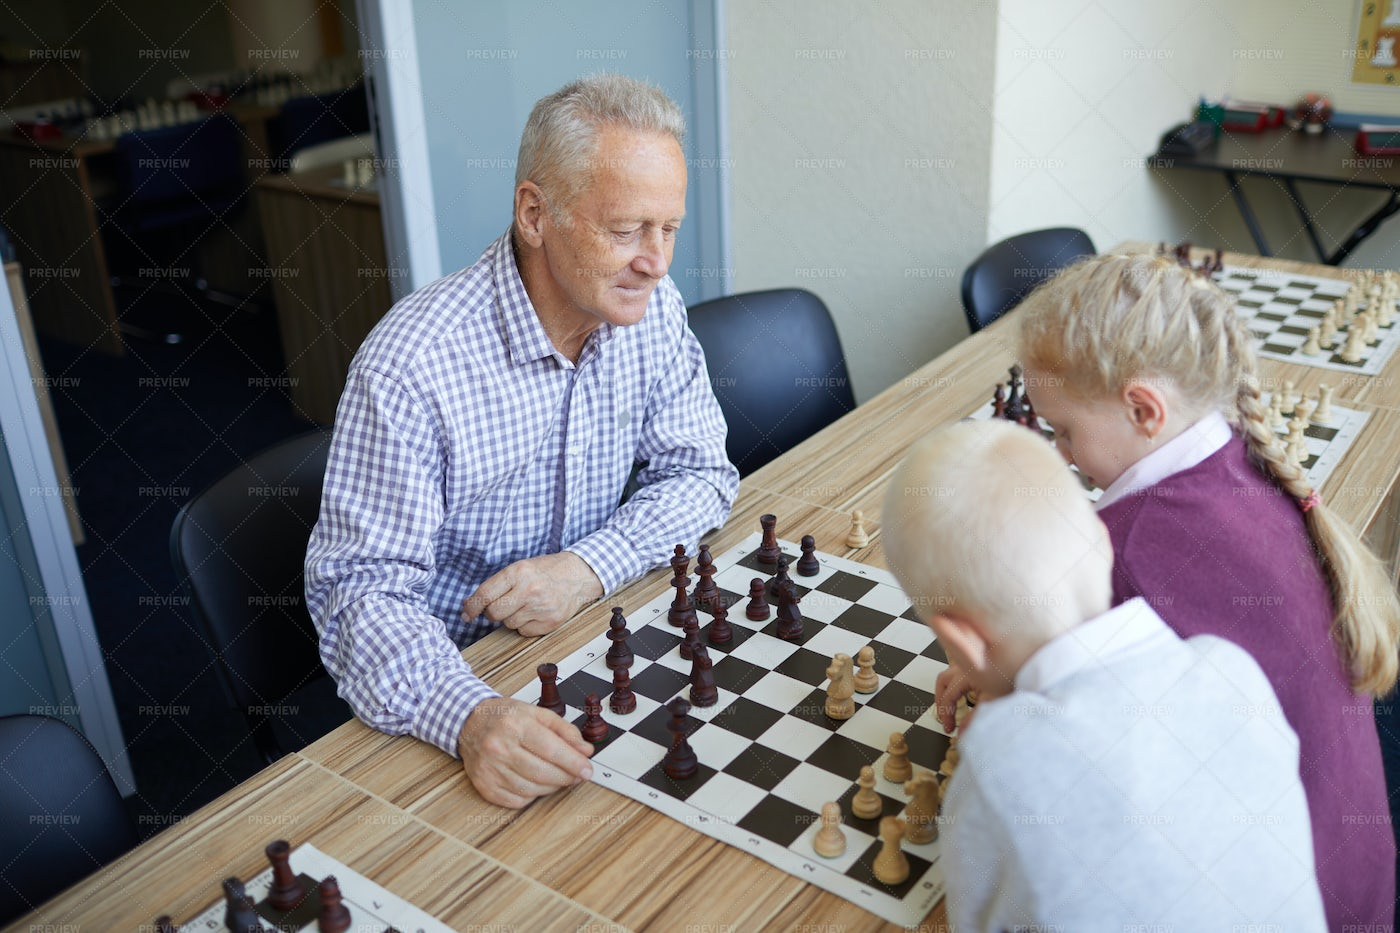 Grandfather Playing Chess: Stock Photos